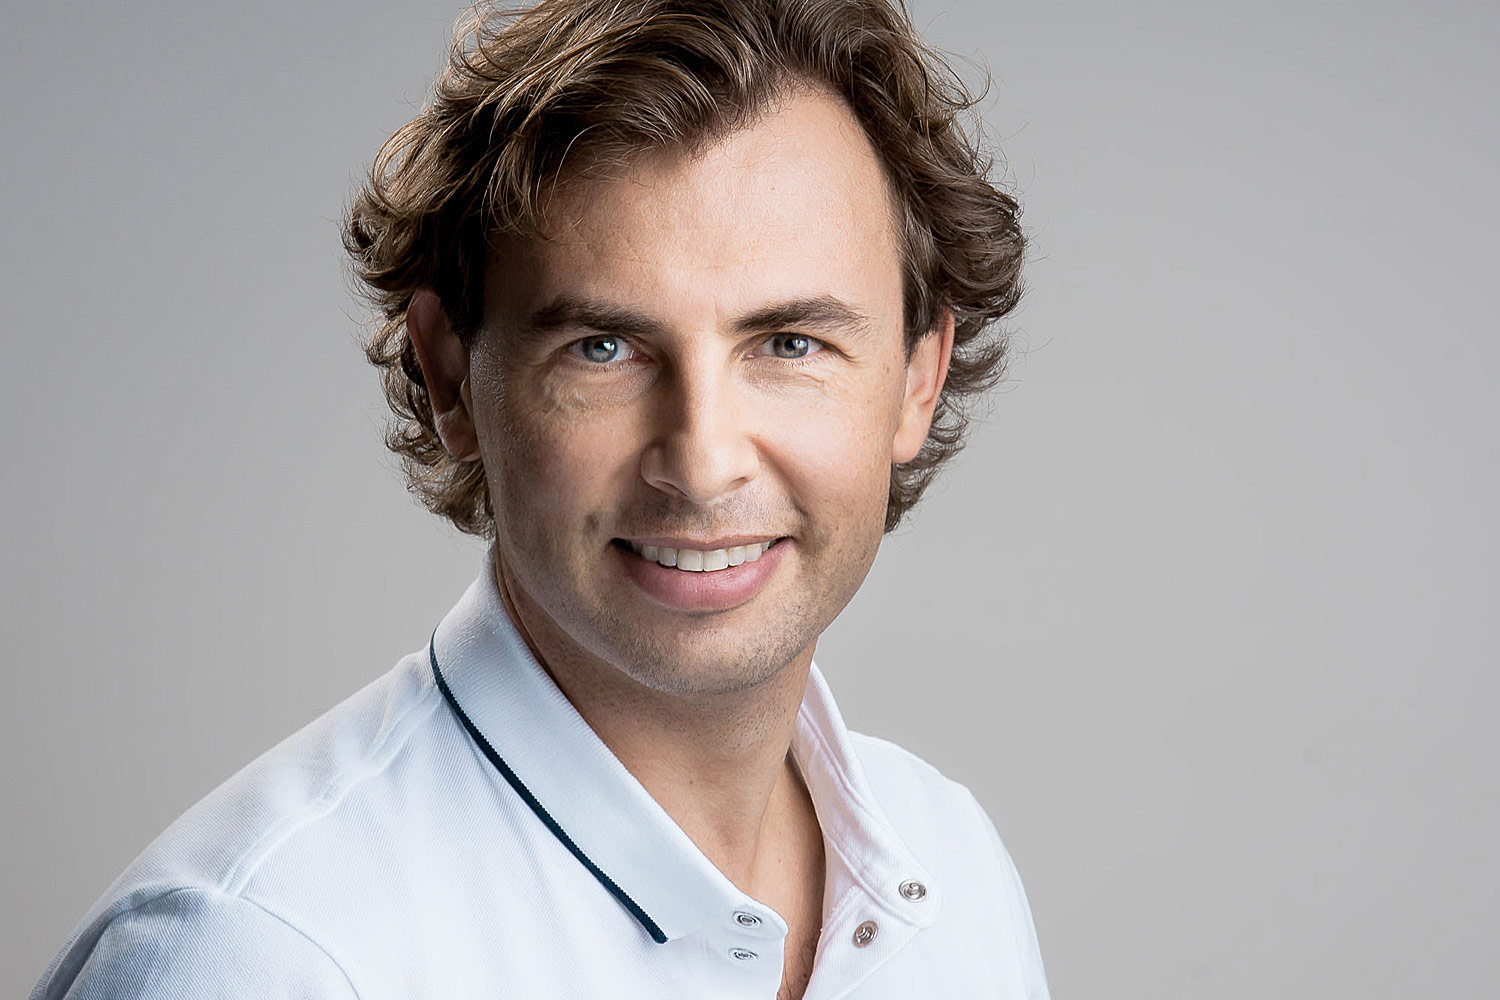 Dr. med. dent. Alexander Dudic Orthodontist at Lakeside Orthodontics, Waedenswil near Zurich